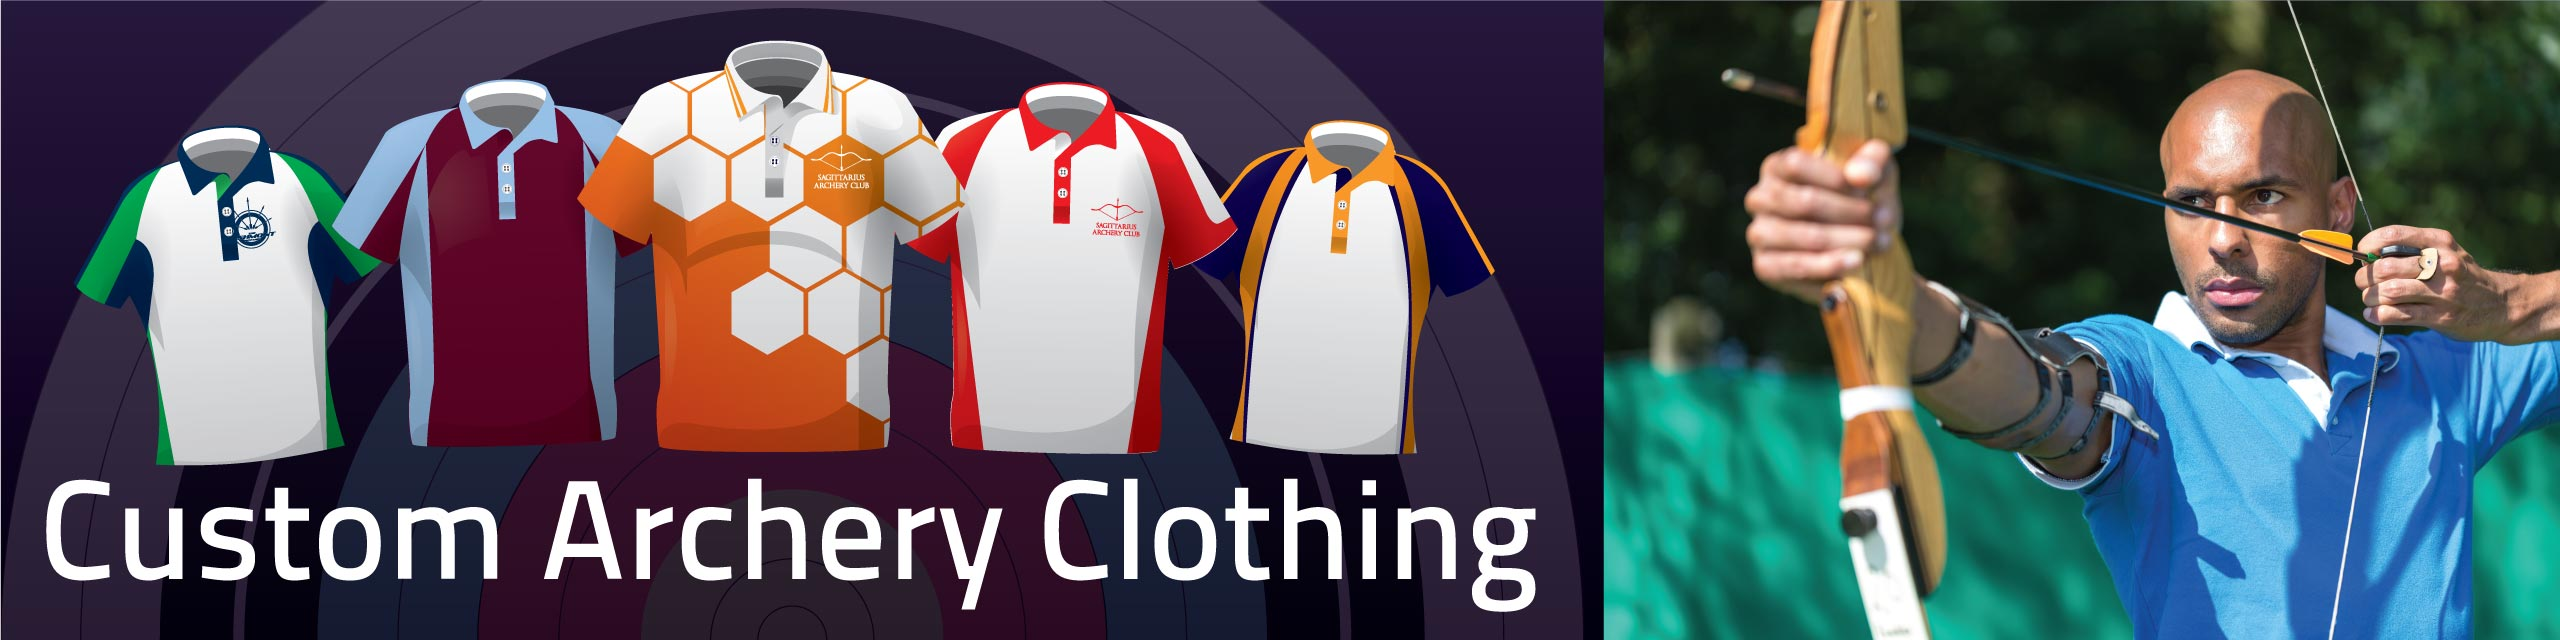 Design you own archery clothing at Team Colours